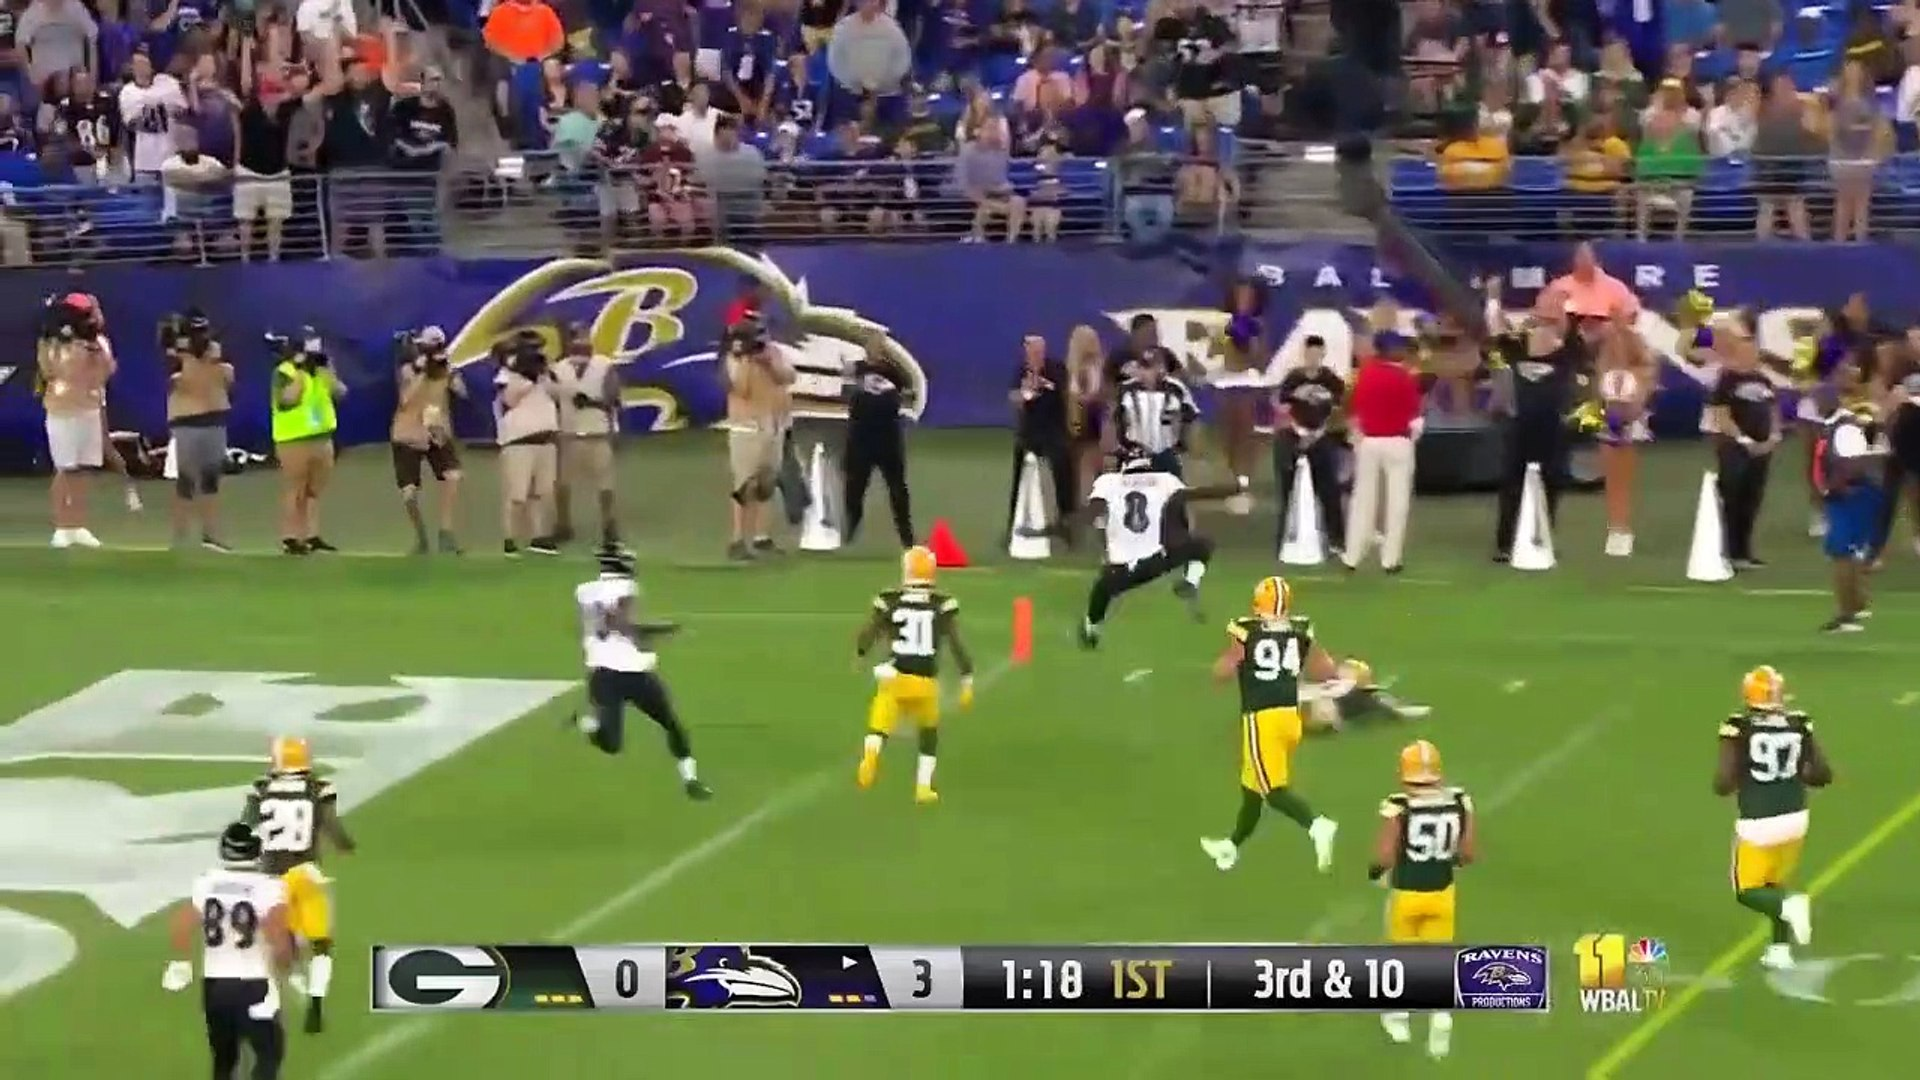 Packers vs Ravens NFL Preseason First Half Highlights - NFL Highlights